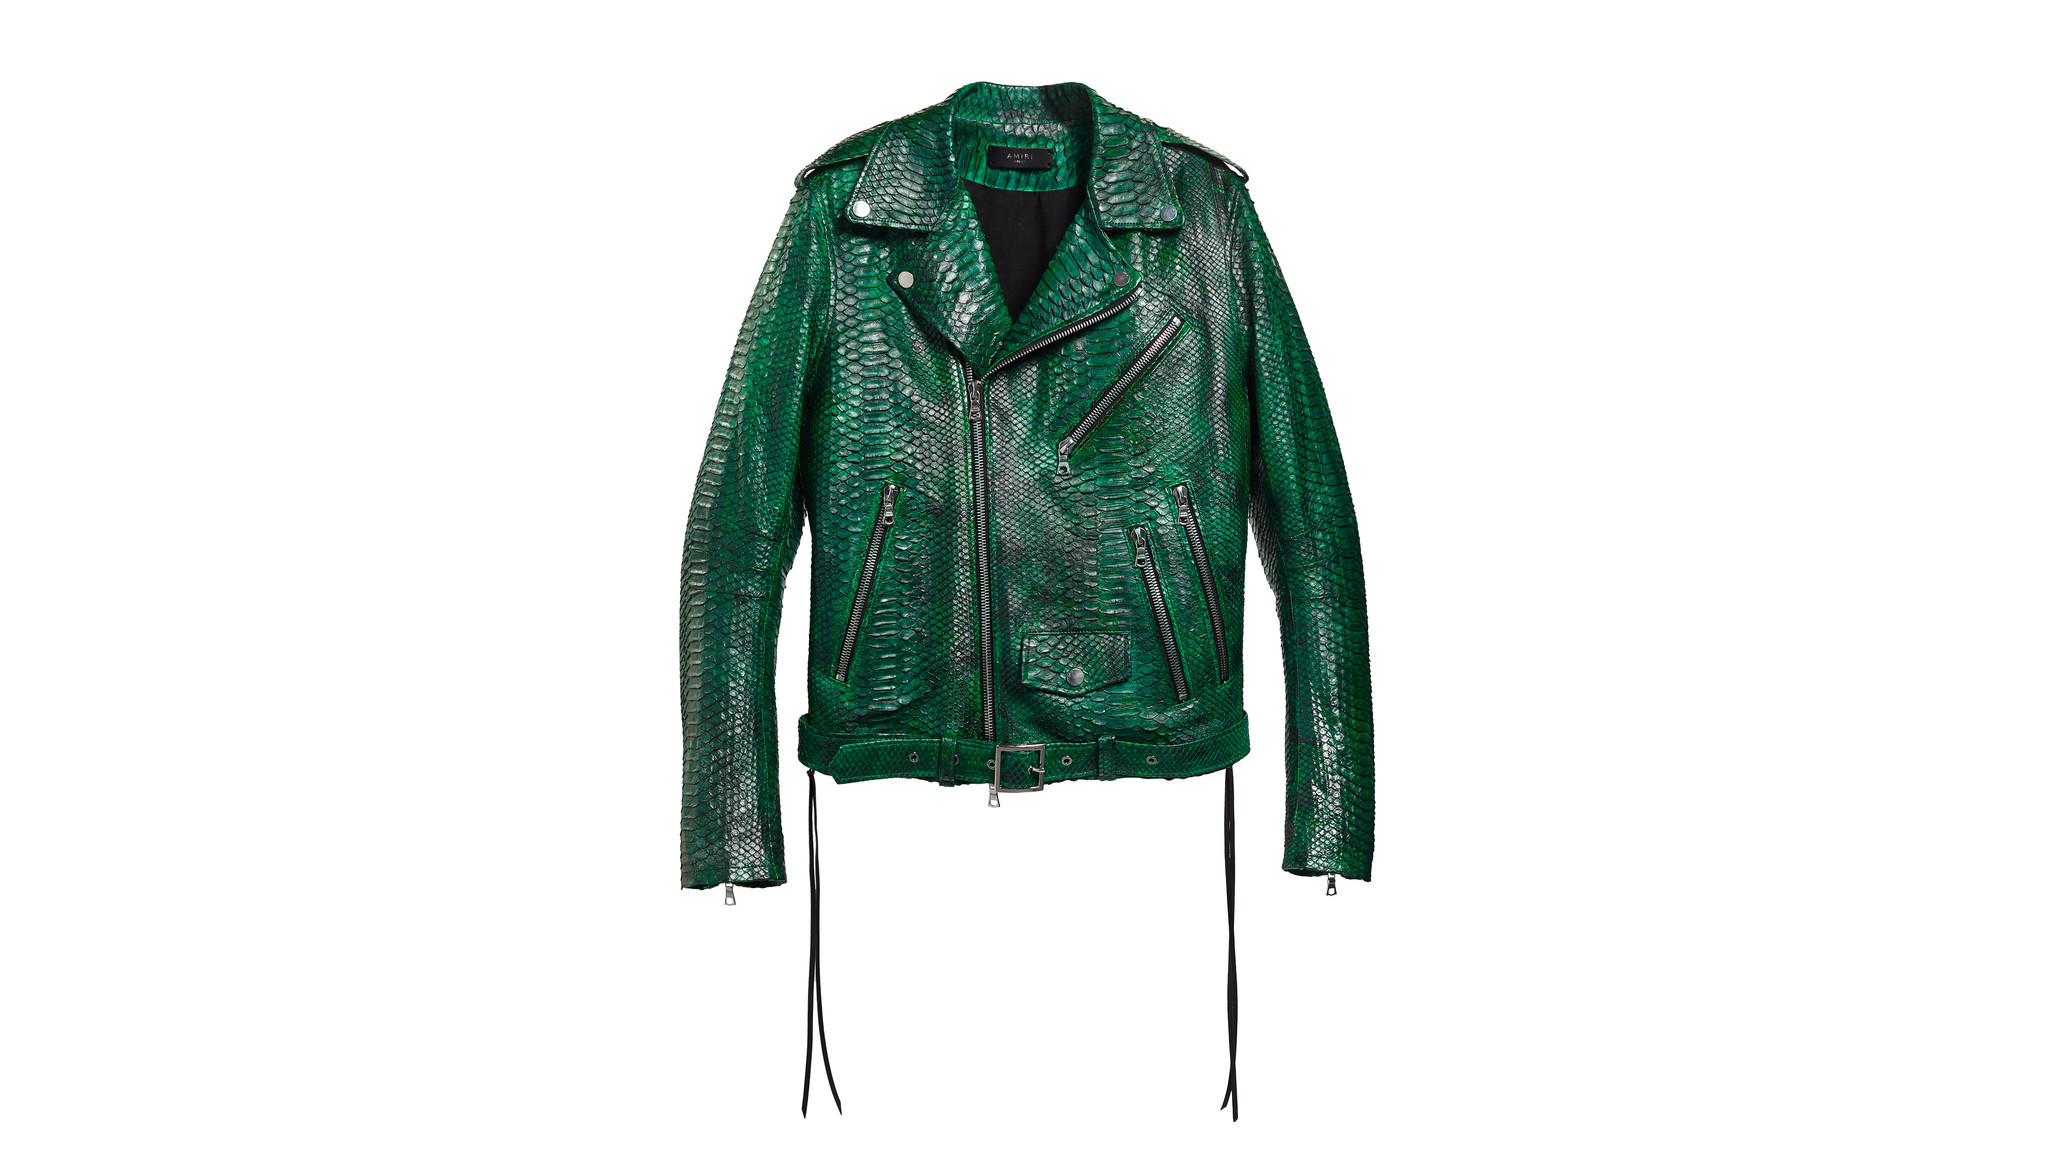 Amiri green hand-dyed snakeskin moto jacket made in L.A., $12,000 at barneys.com.